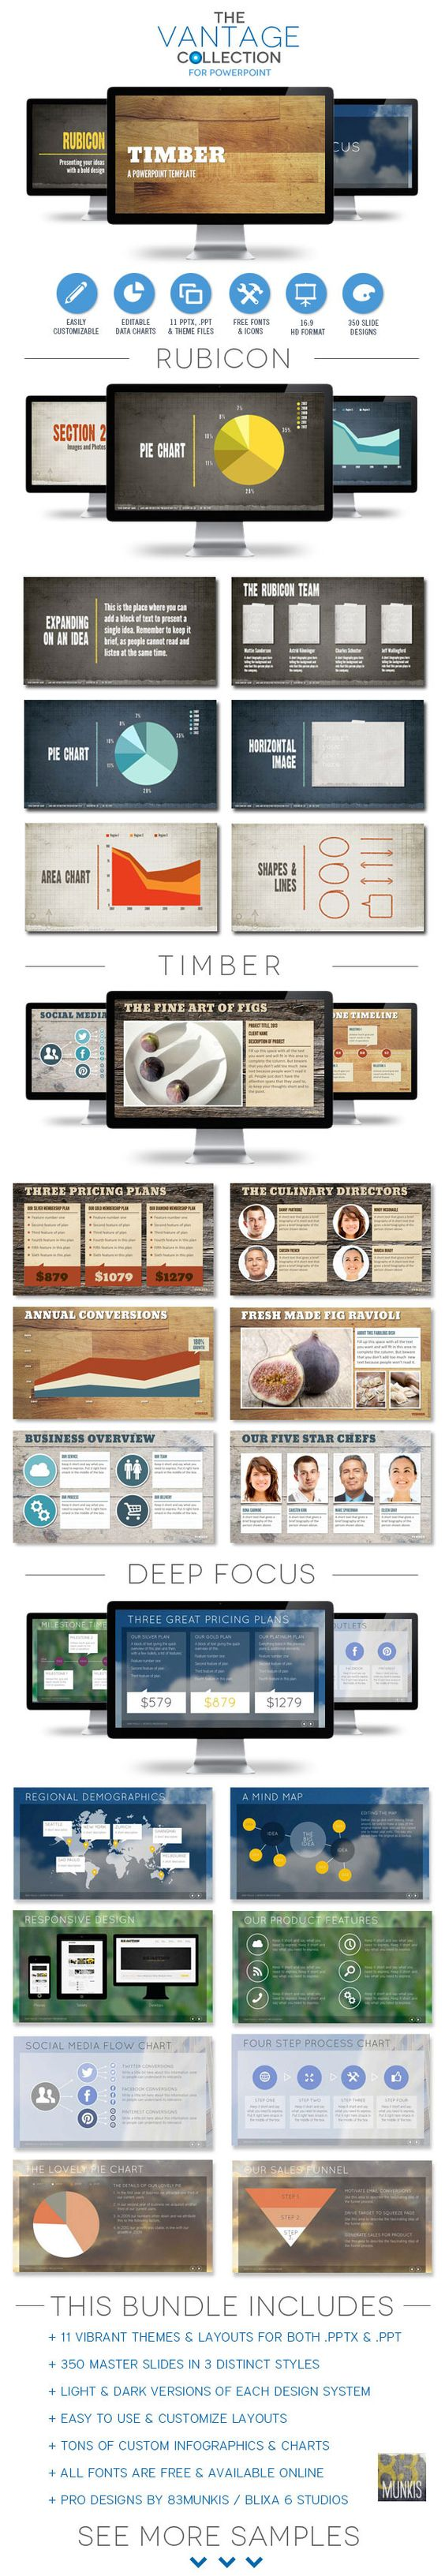 Zagg annual report 2017 powerpoint template business powerpoint zagg annual report 2017 powerpoint template business powerpoint templates annual reports and template toneelgroepblik Image collections